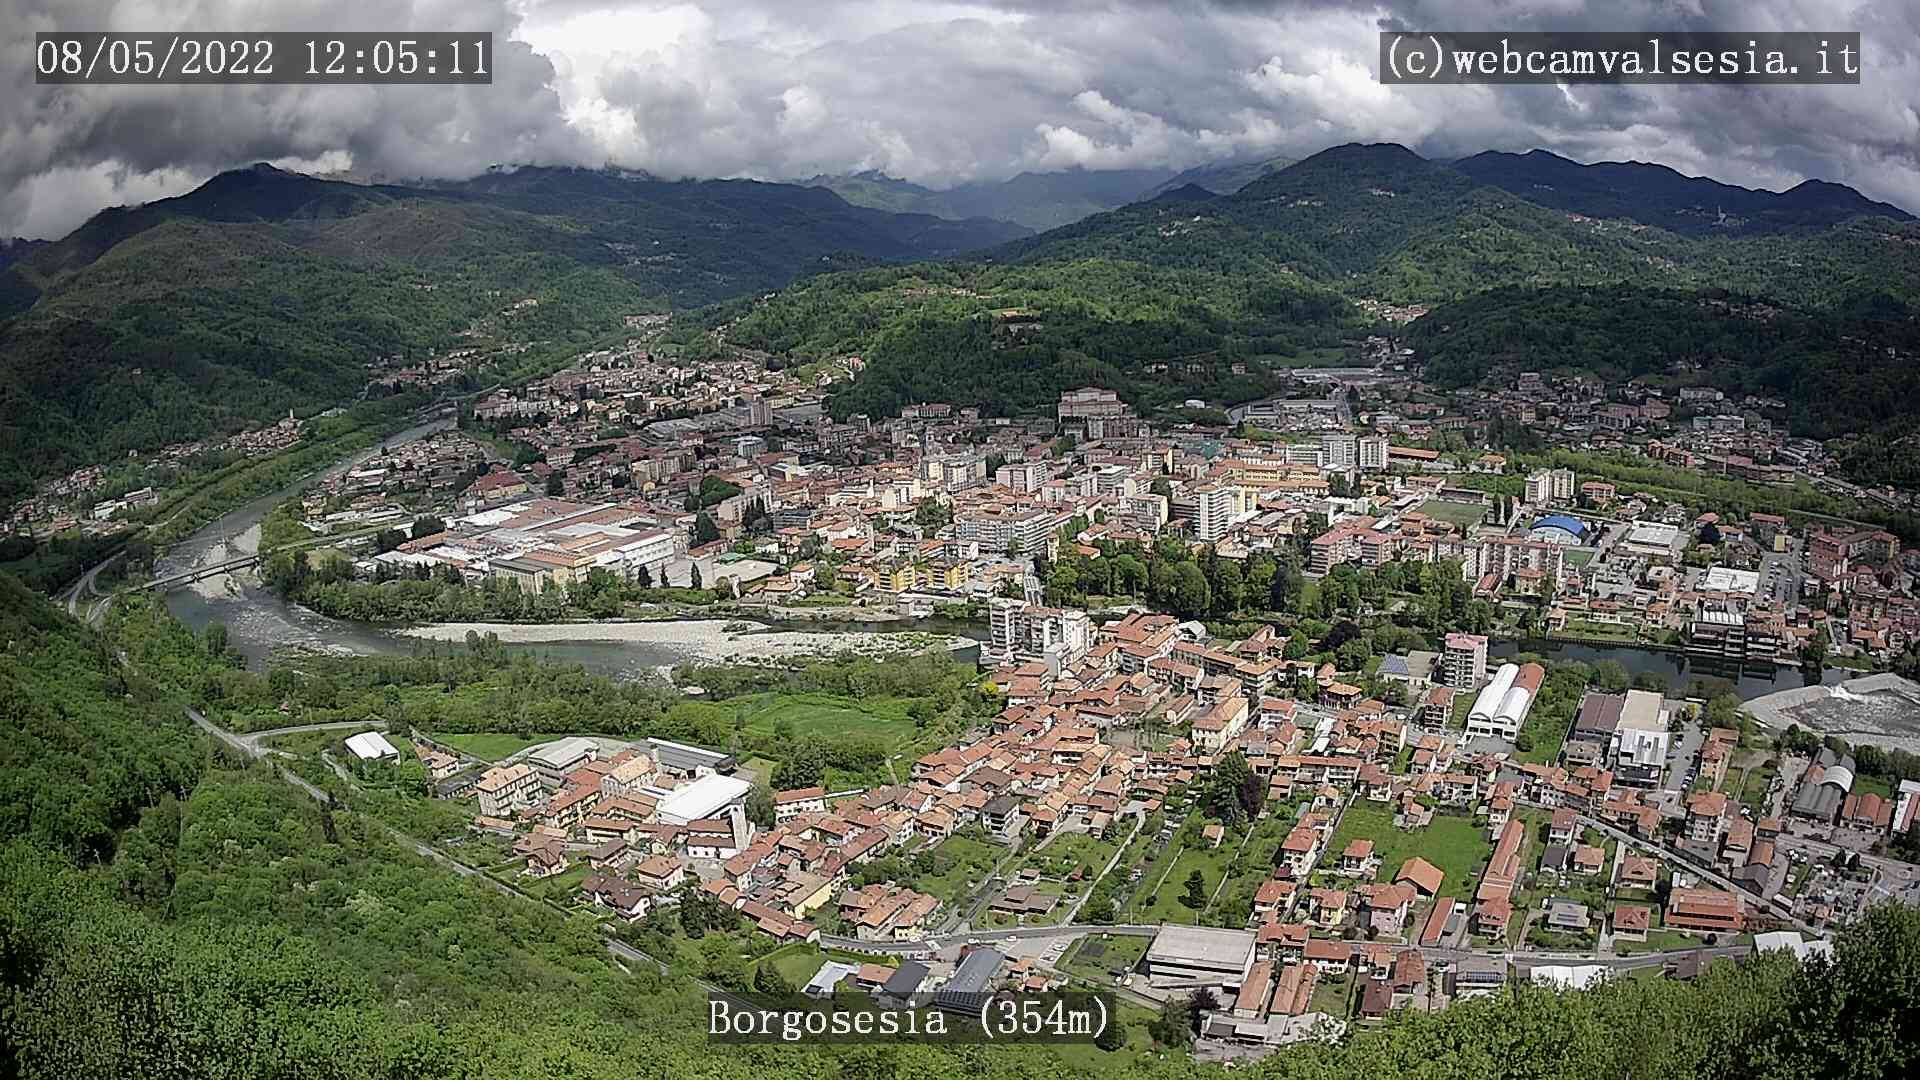 webcam valsesia Borgosesia2